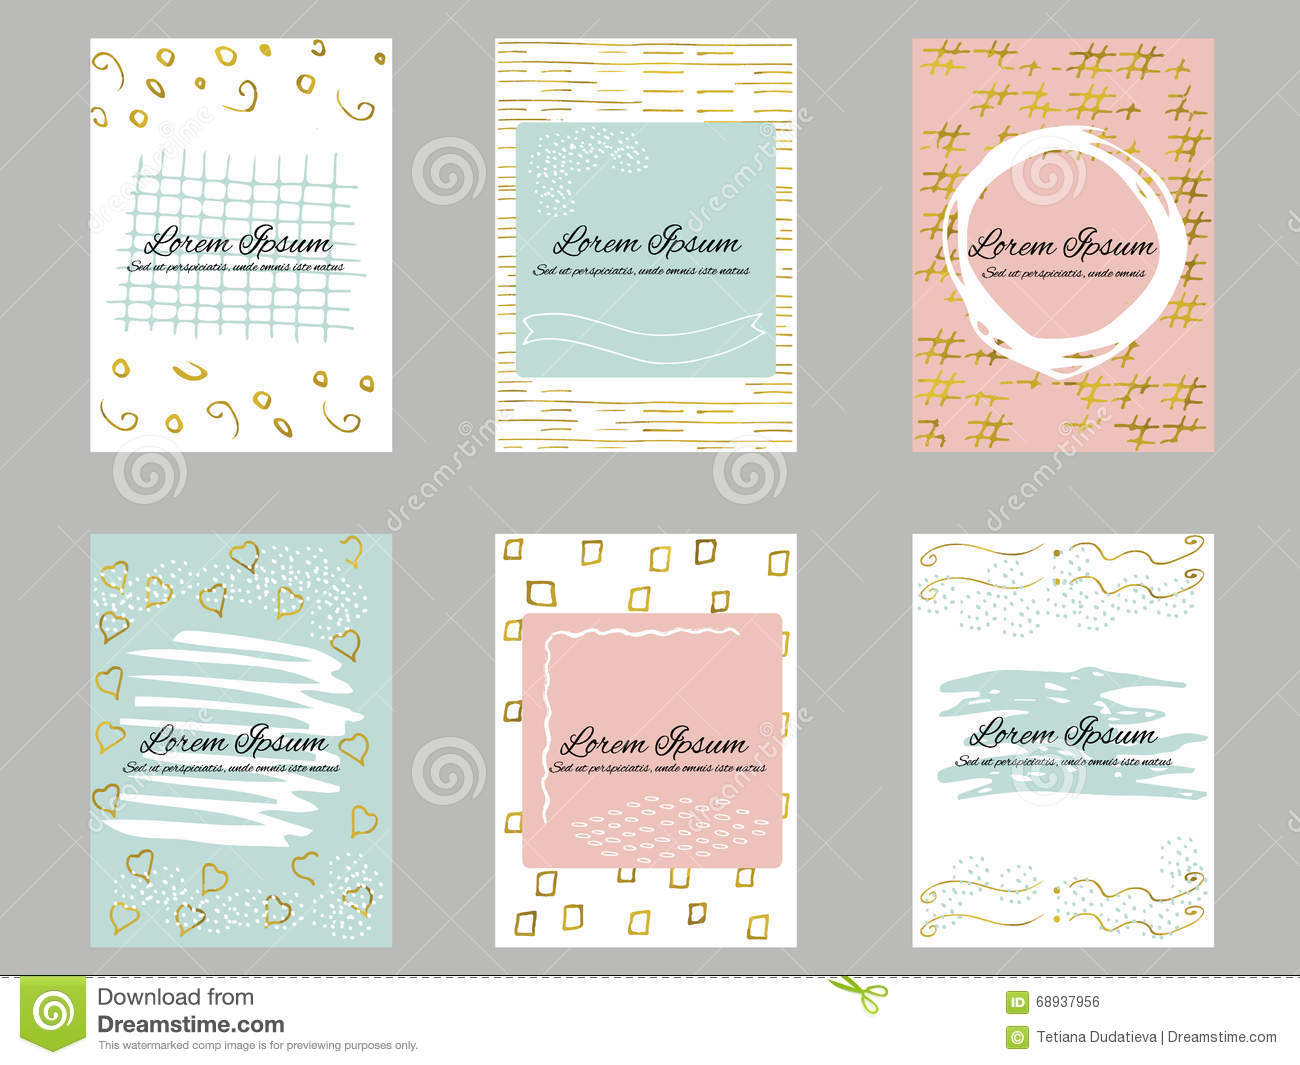 Set of 6 gold, blue, pink and white business card template or gift cards